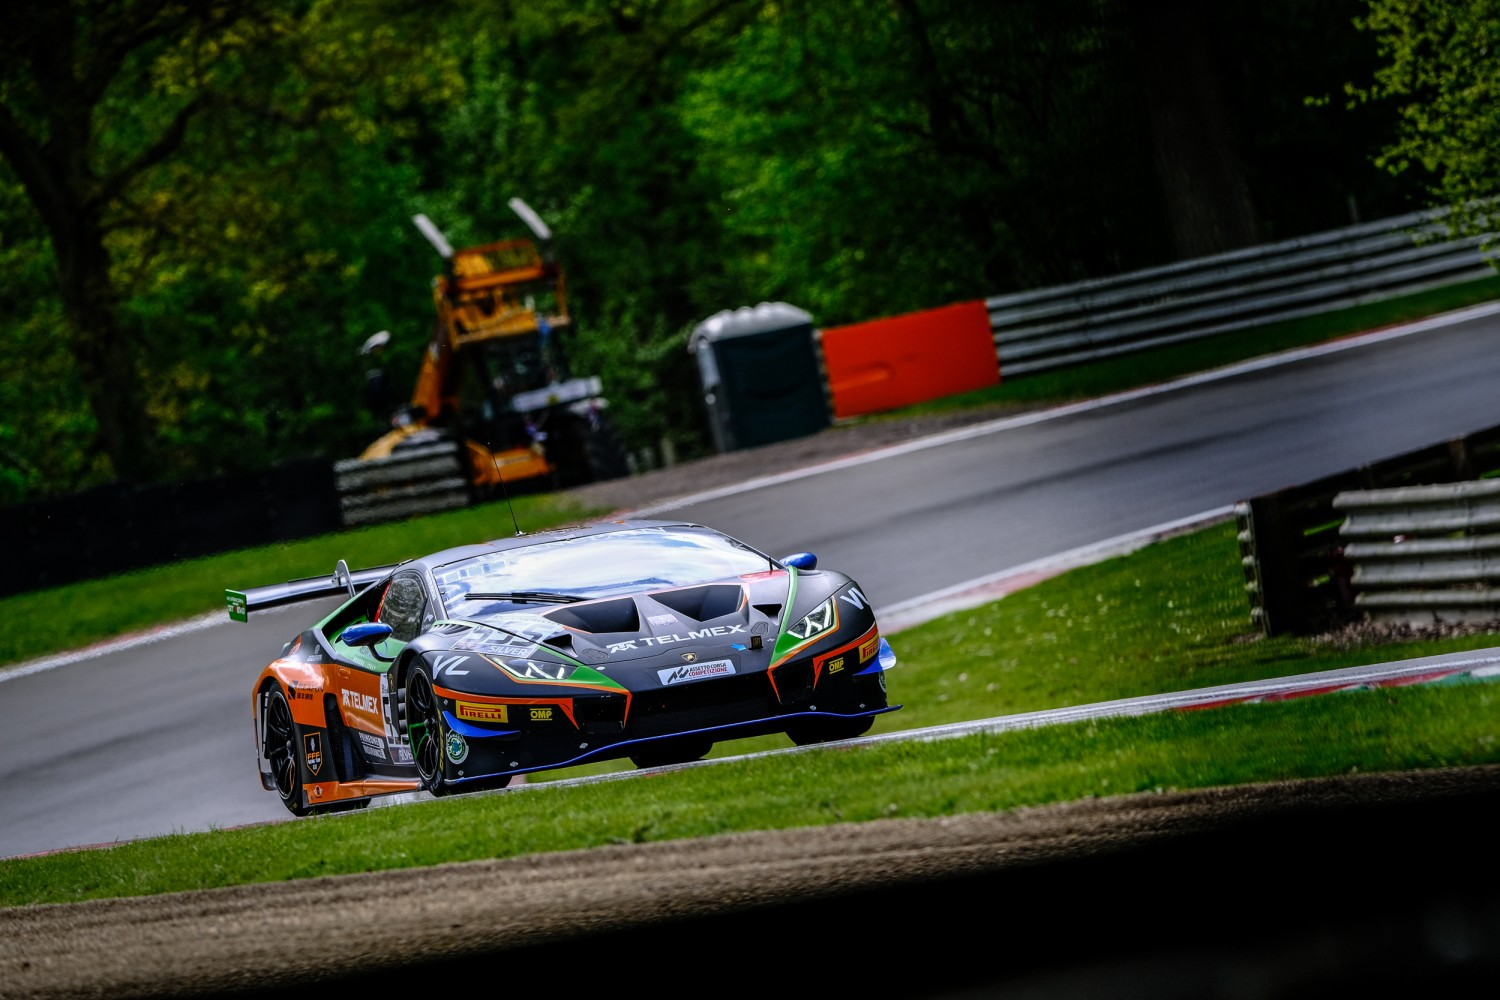 #555 Orange 1 FFF Racing Team CHN Lamborghini Huracan GT3 2019 Diego Menchaca MEX Taylor Proto GBR Silver Cup, Free Practice 1  | SRO / Dirk Bogaerts Photography